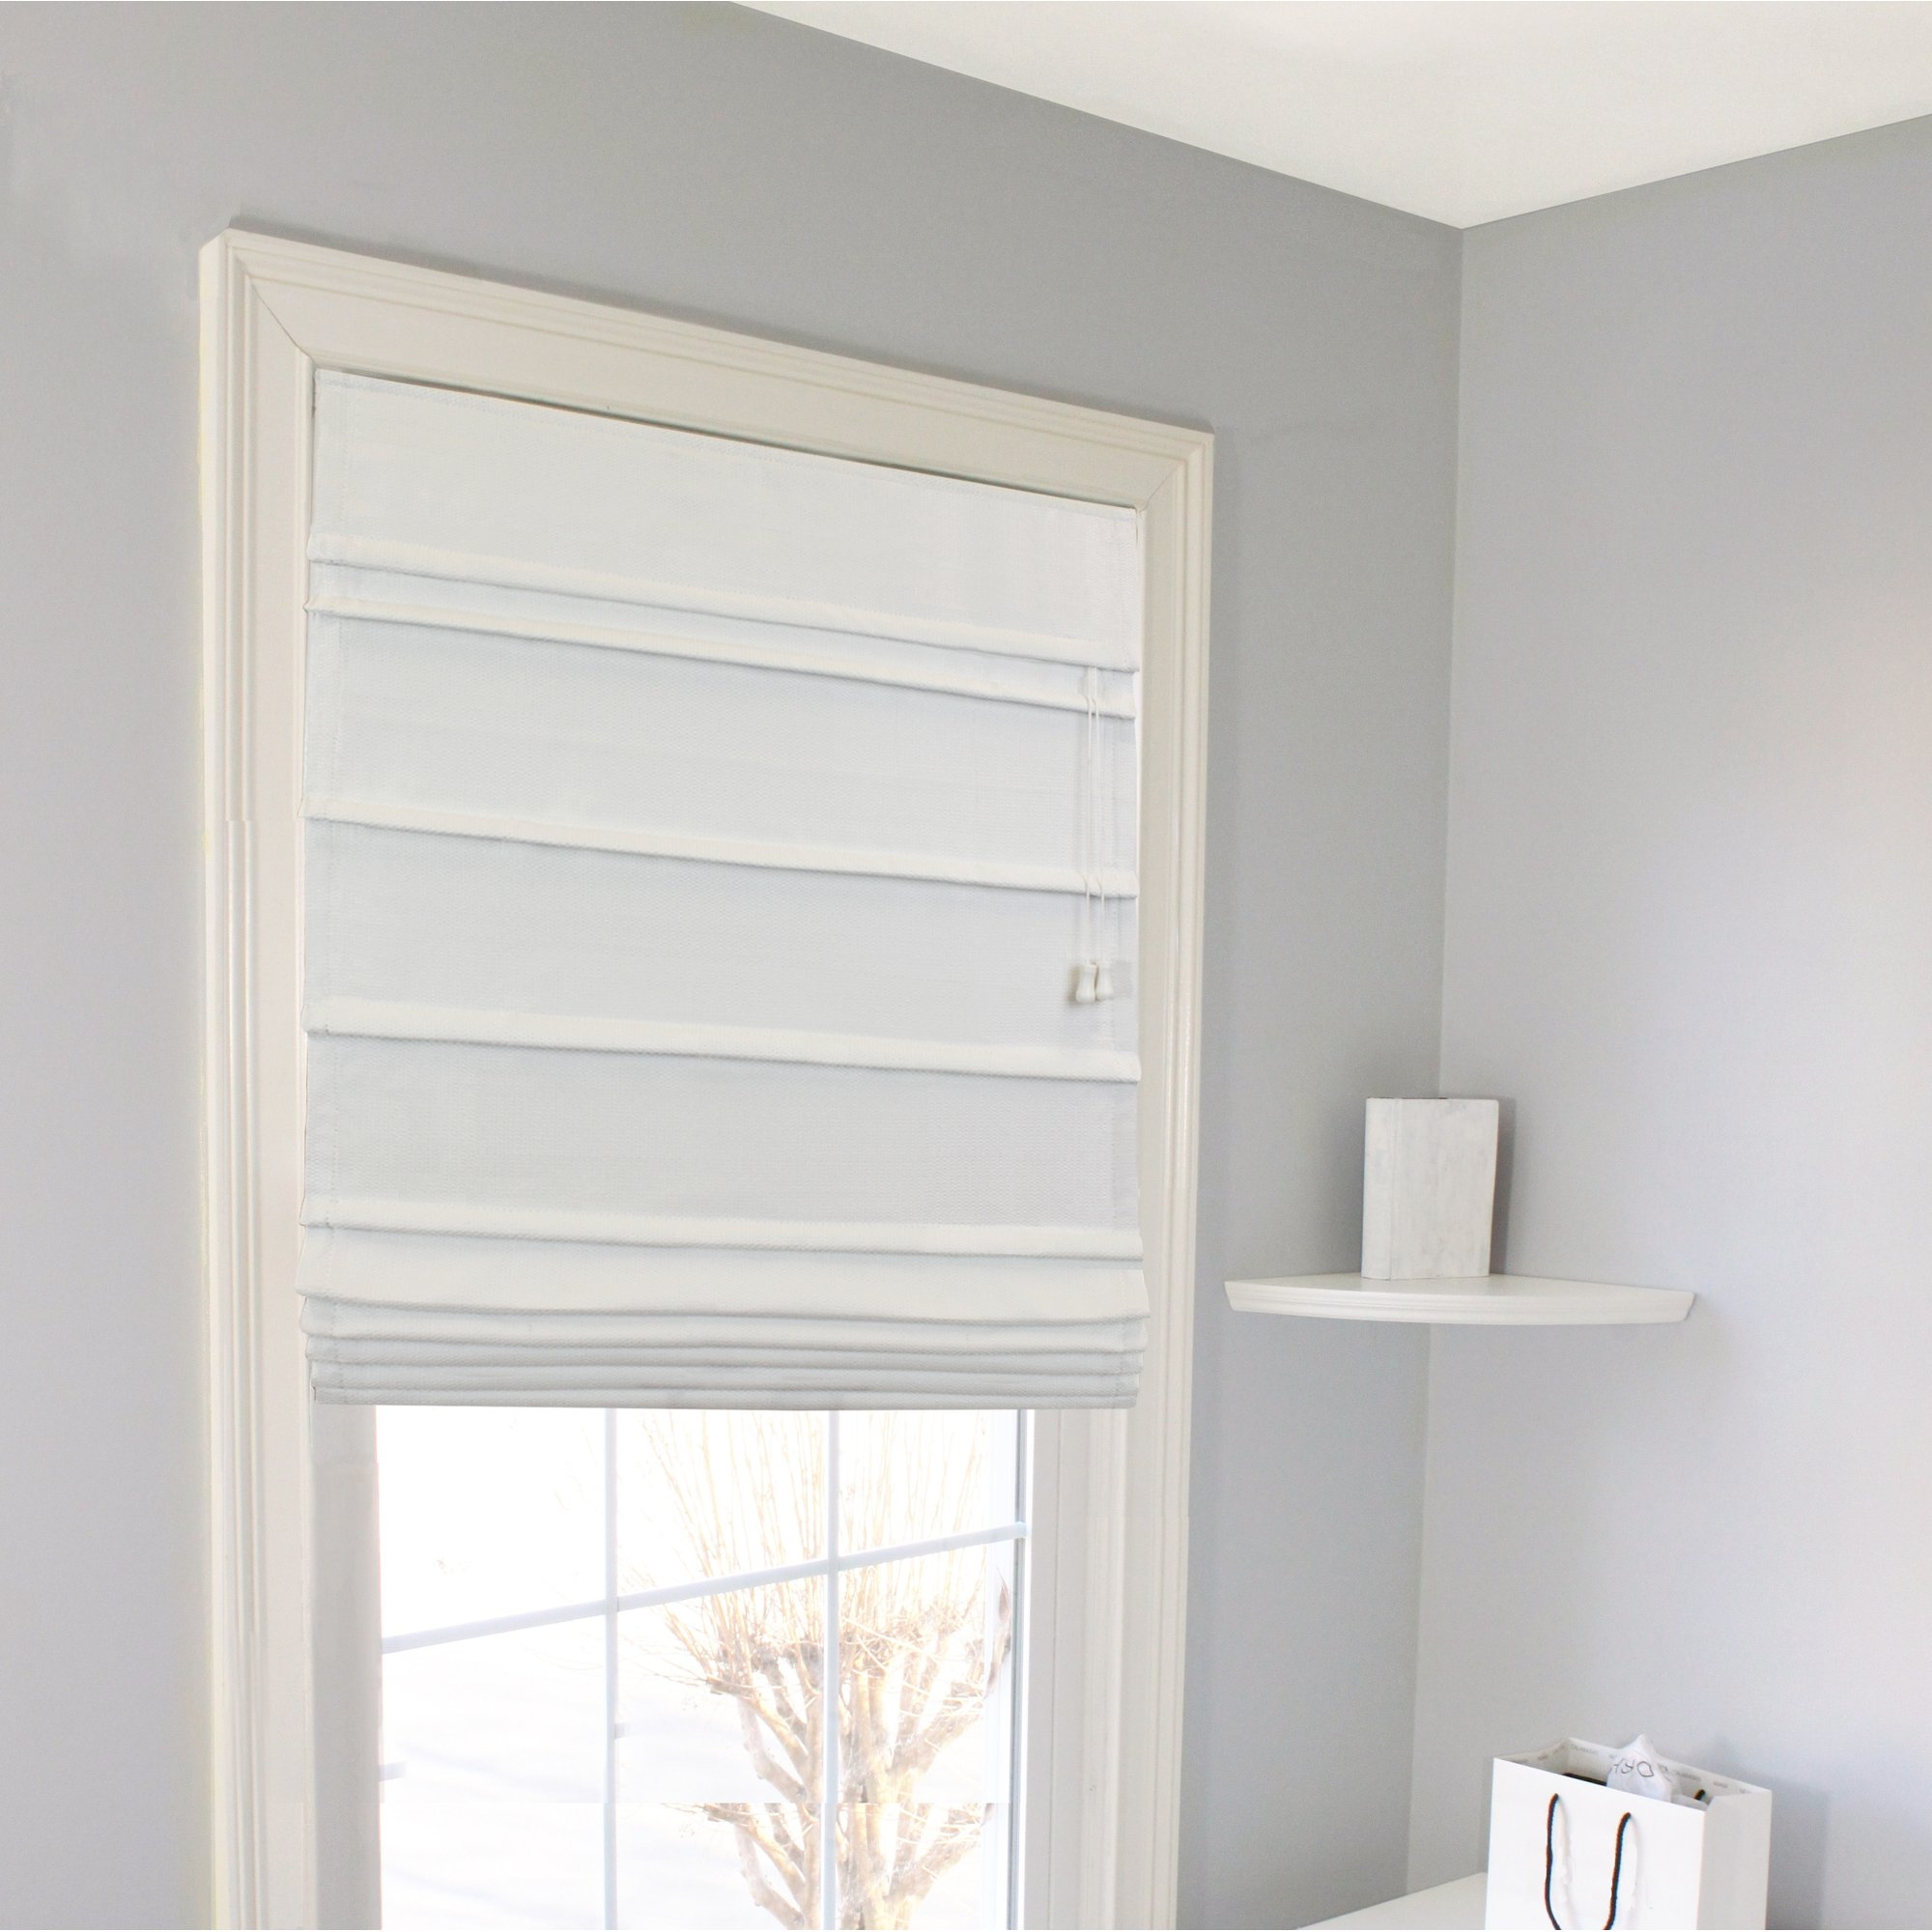 Latitude Run Blackout Thermal Fabric Roman Shade Reviews Wayfair In Blackout Thermal Blinds (Image 7 of 15)